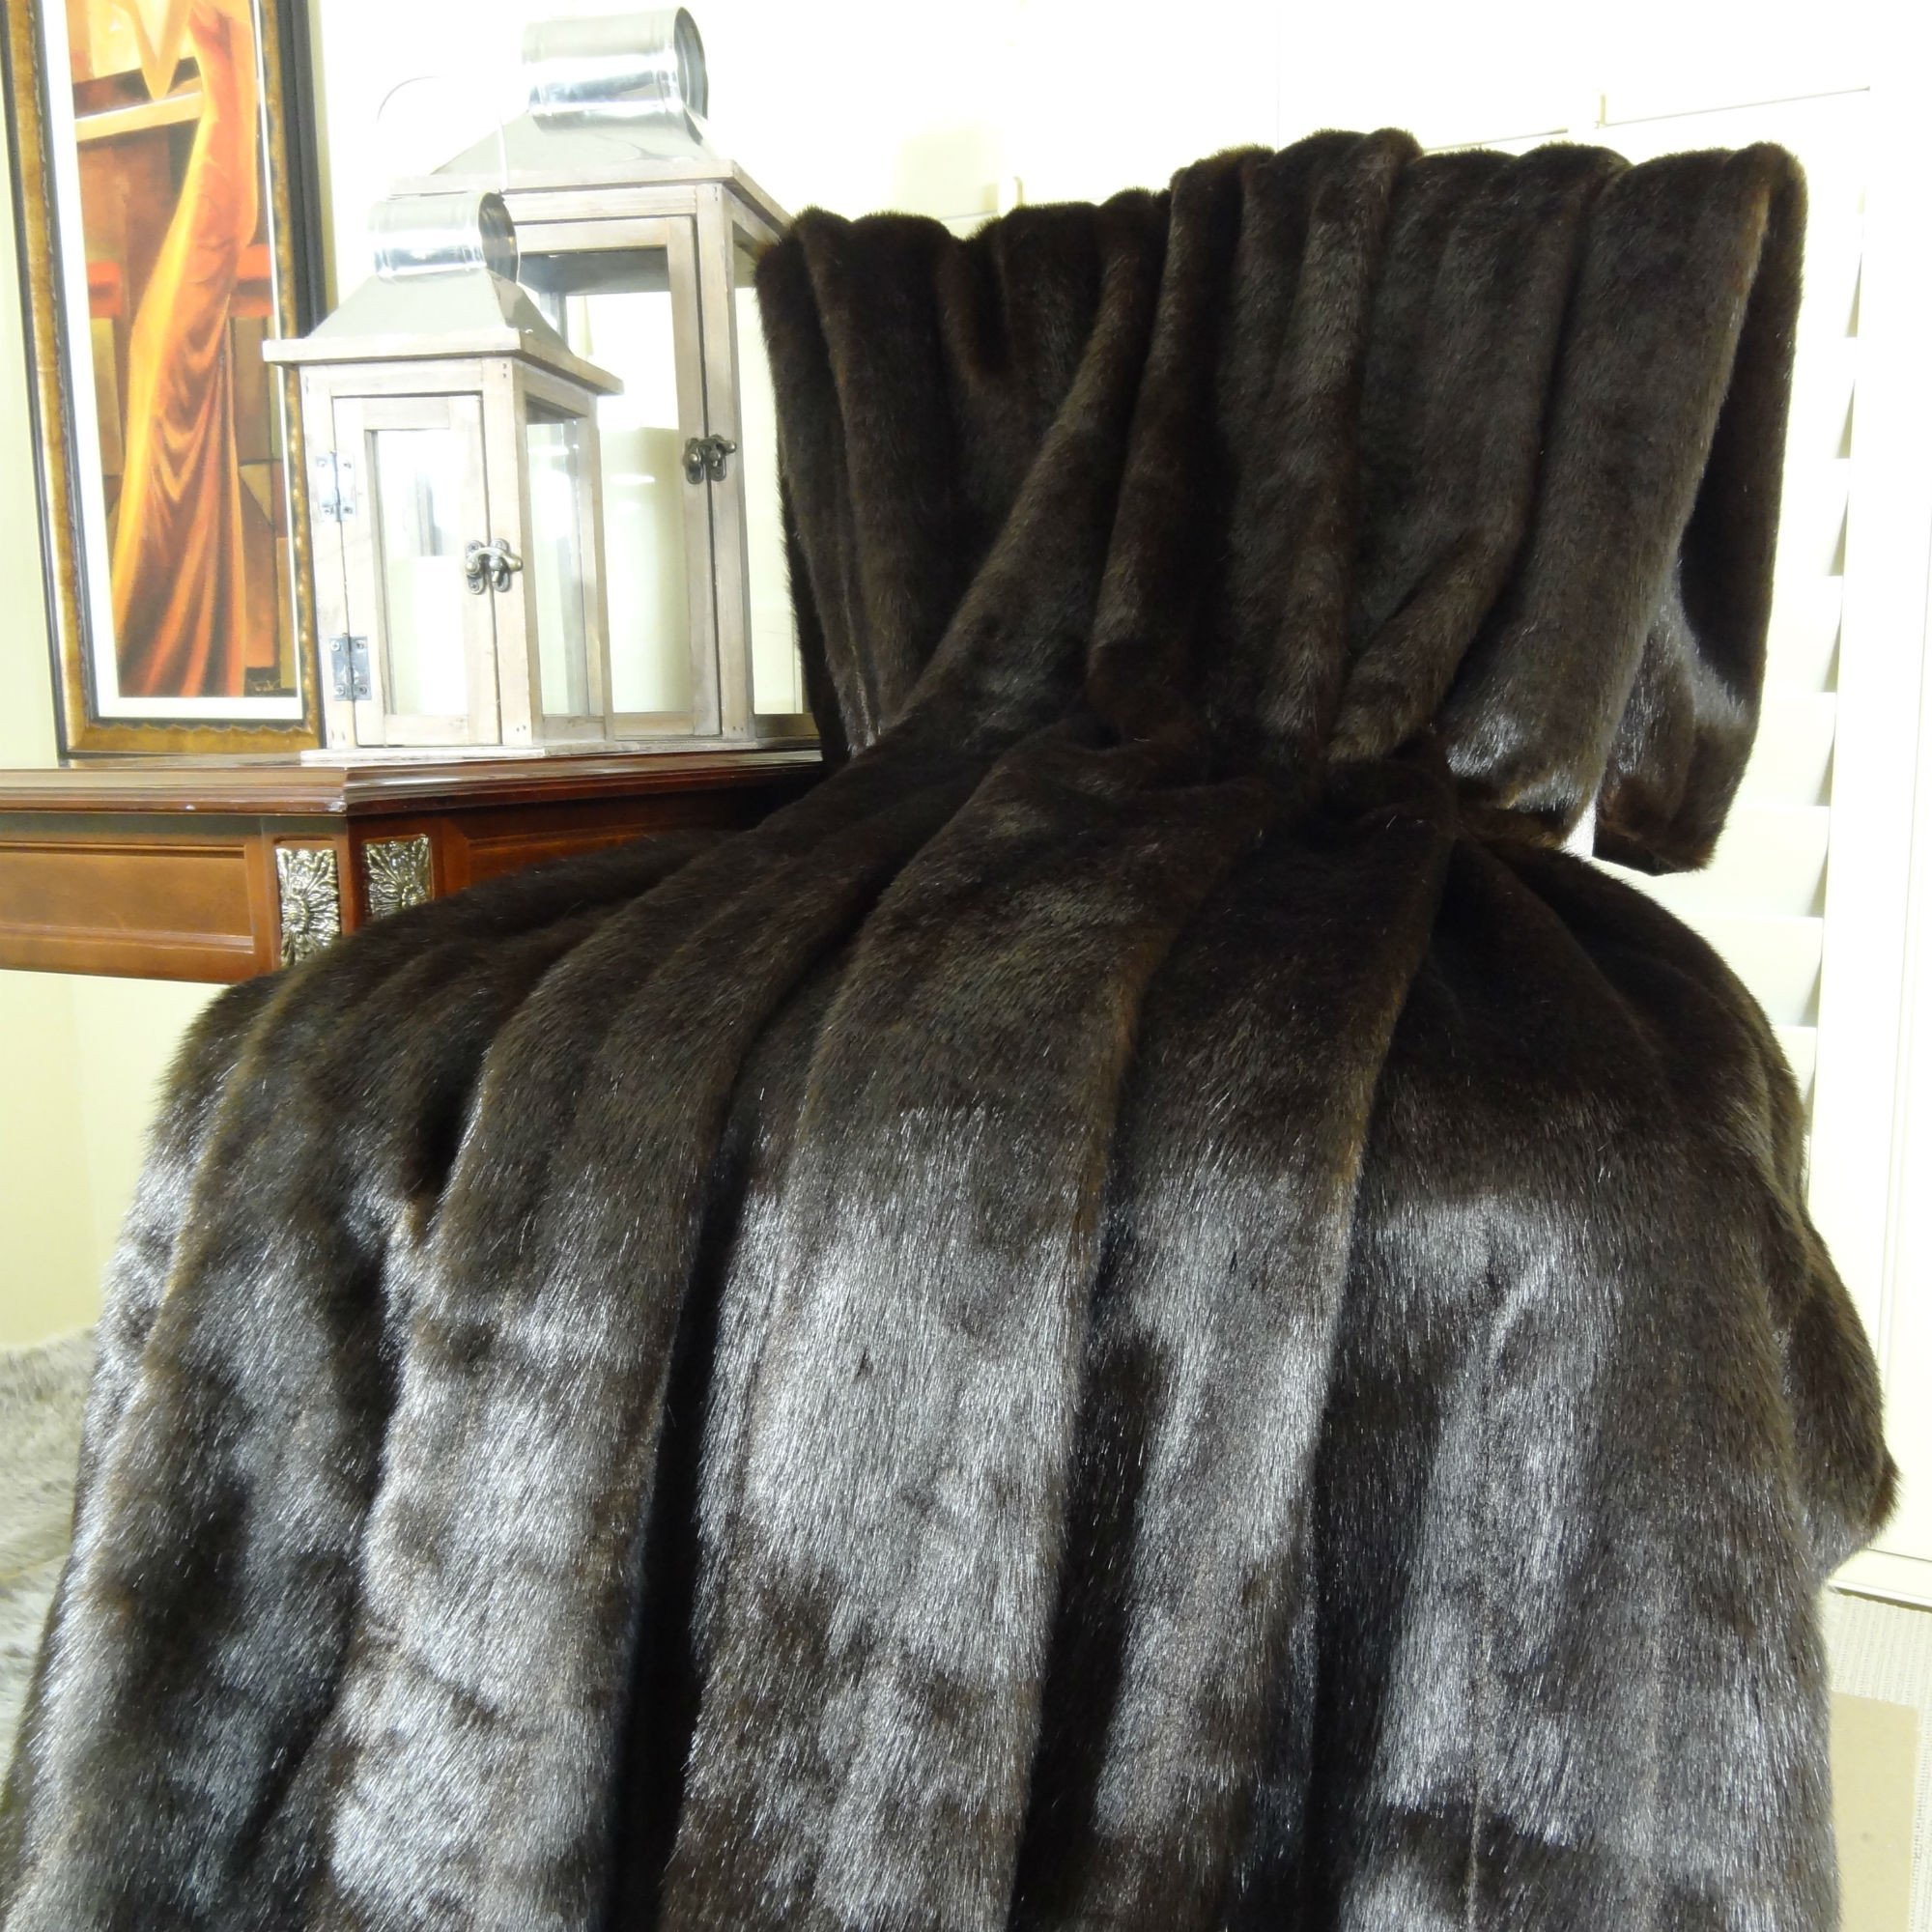 Thomas Collection faux fur bedspread, handmade throw blanket, Luxury Dark Brown Chocolate Mink Faux Fur Throw Blanket & Bedspread, Luxury Mink Fur, Made in America, 16425 by Thomas Collection